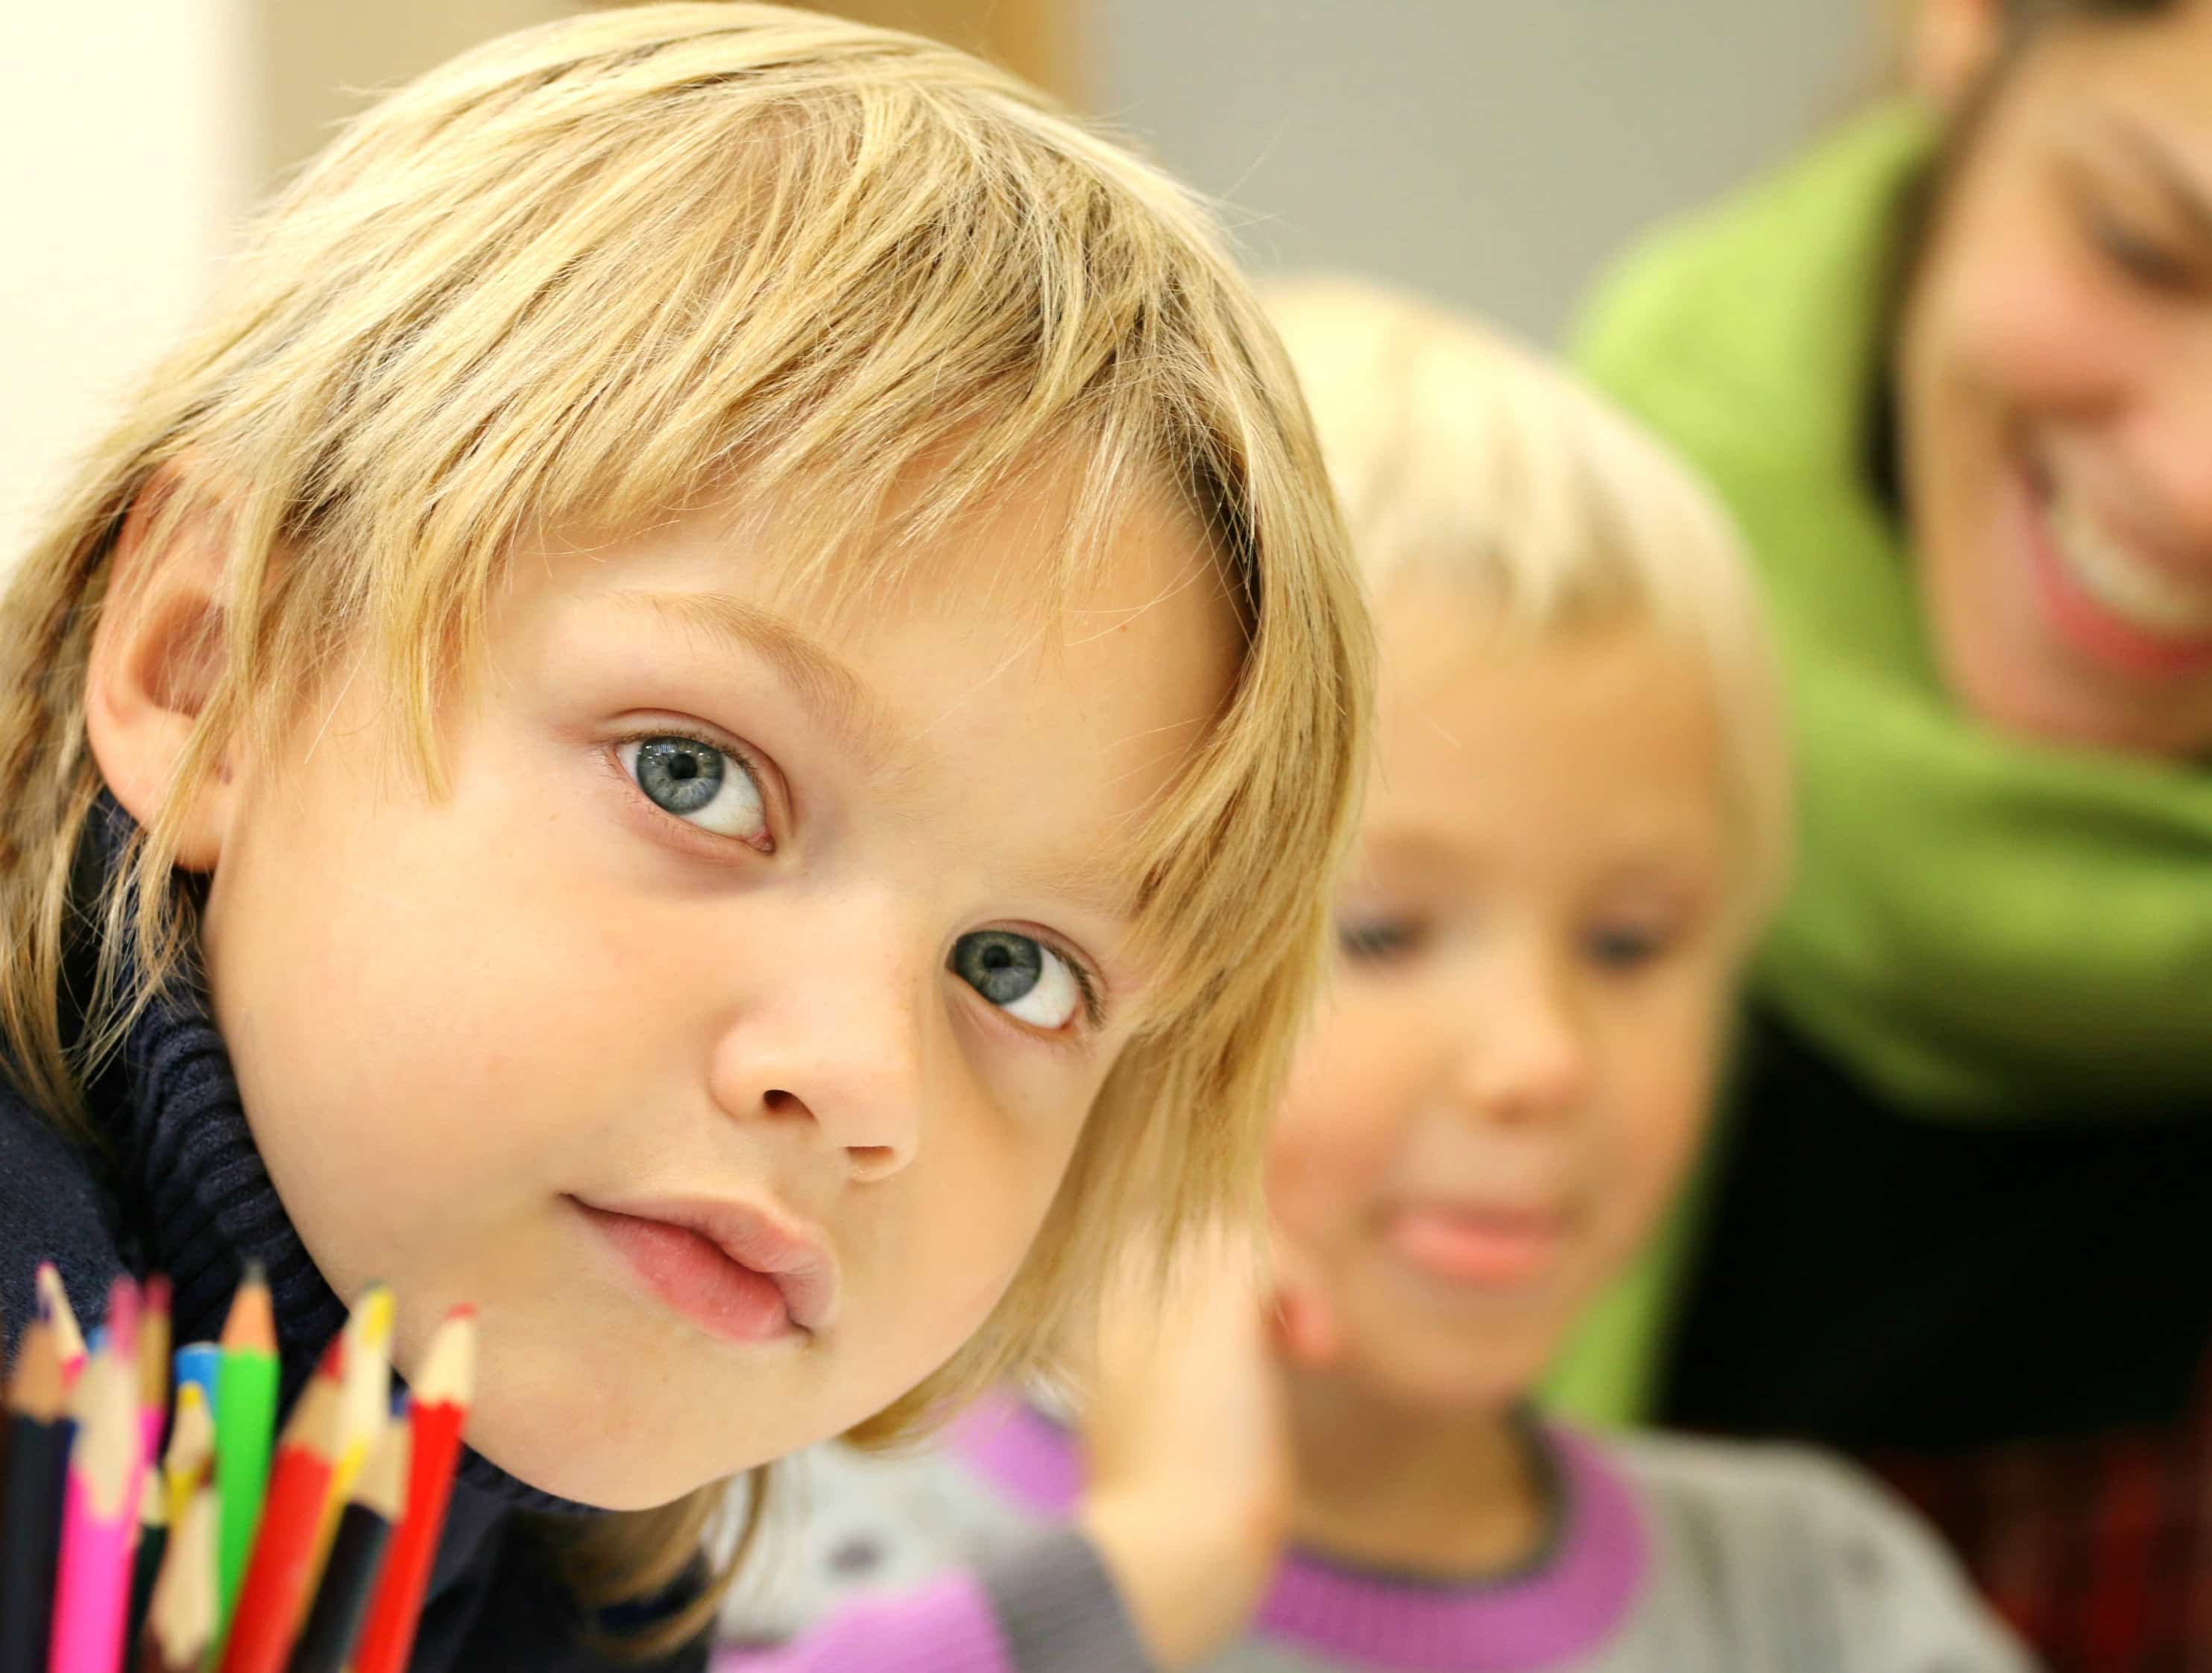 11 Things Your Child's School Principal Wants You To Know